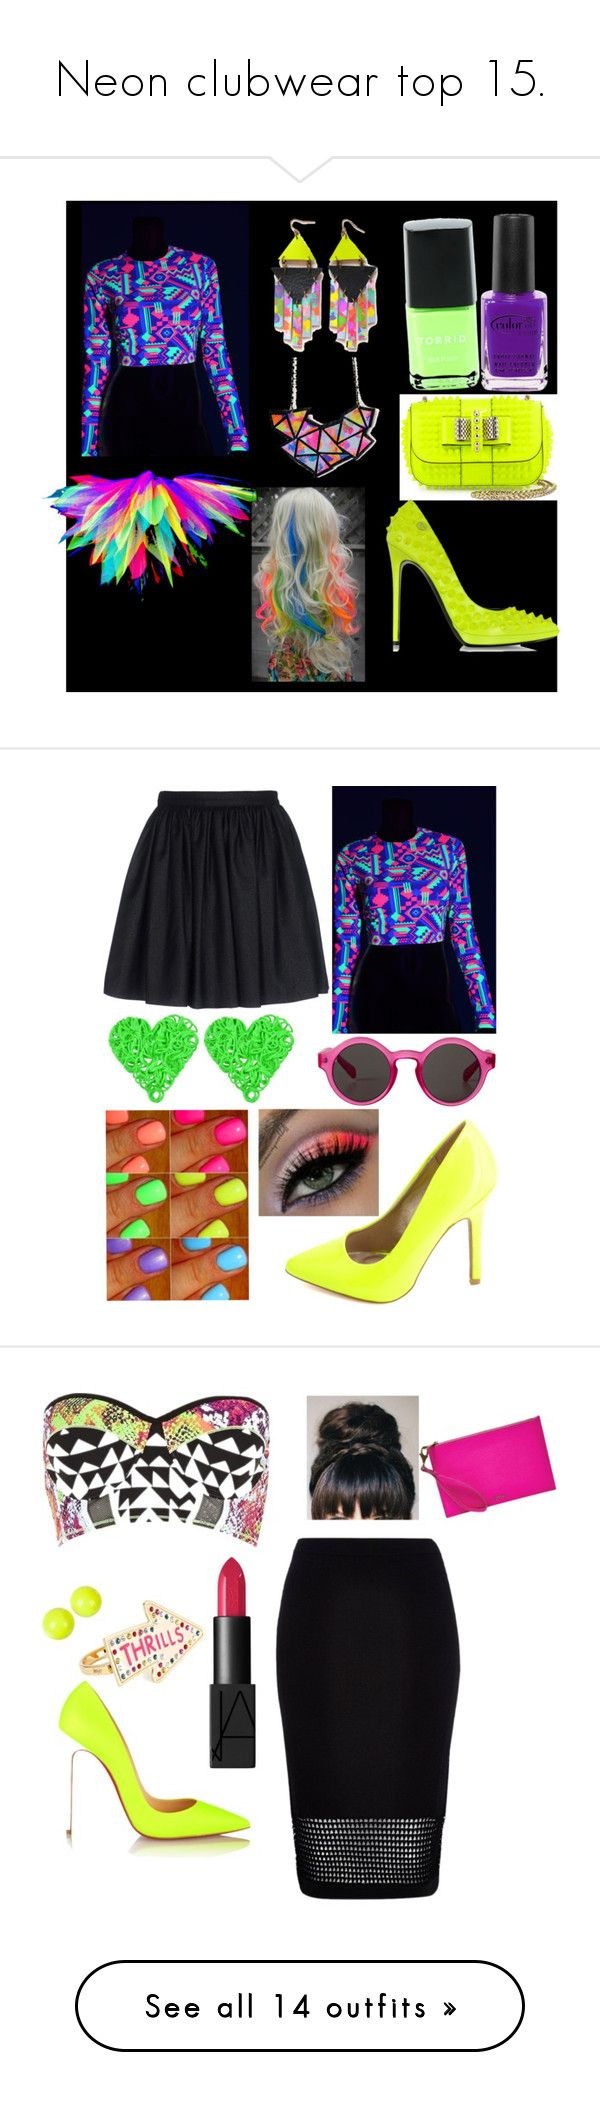 """""""Neon clubwear top 15."""" by rockergirl-861 ❤ liked on Polyvore featuring Torrid, Christian Louboutin, Color Club, Philipp Plein, Mauro Grifoni, Charlotte Russe, Monki, neon, julyissuu and River Island"""